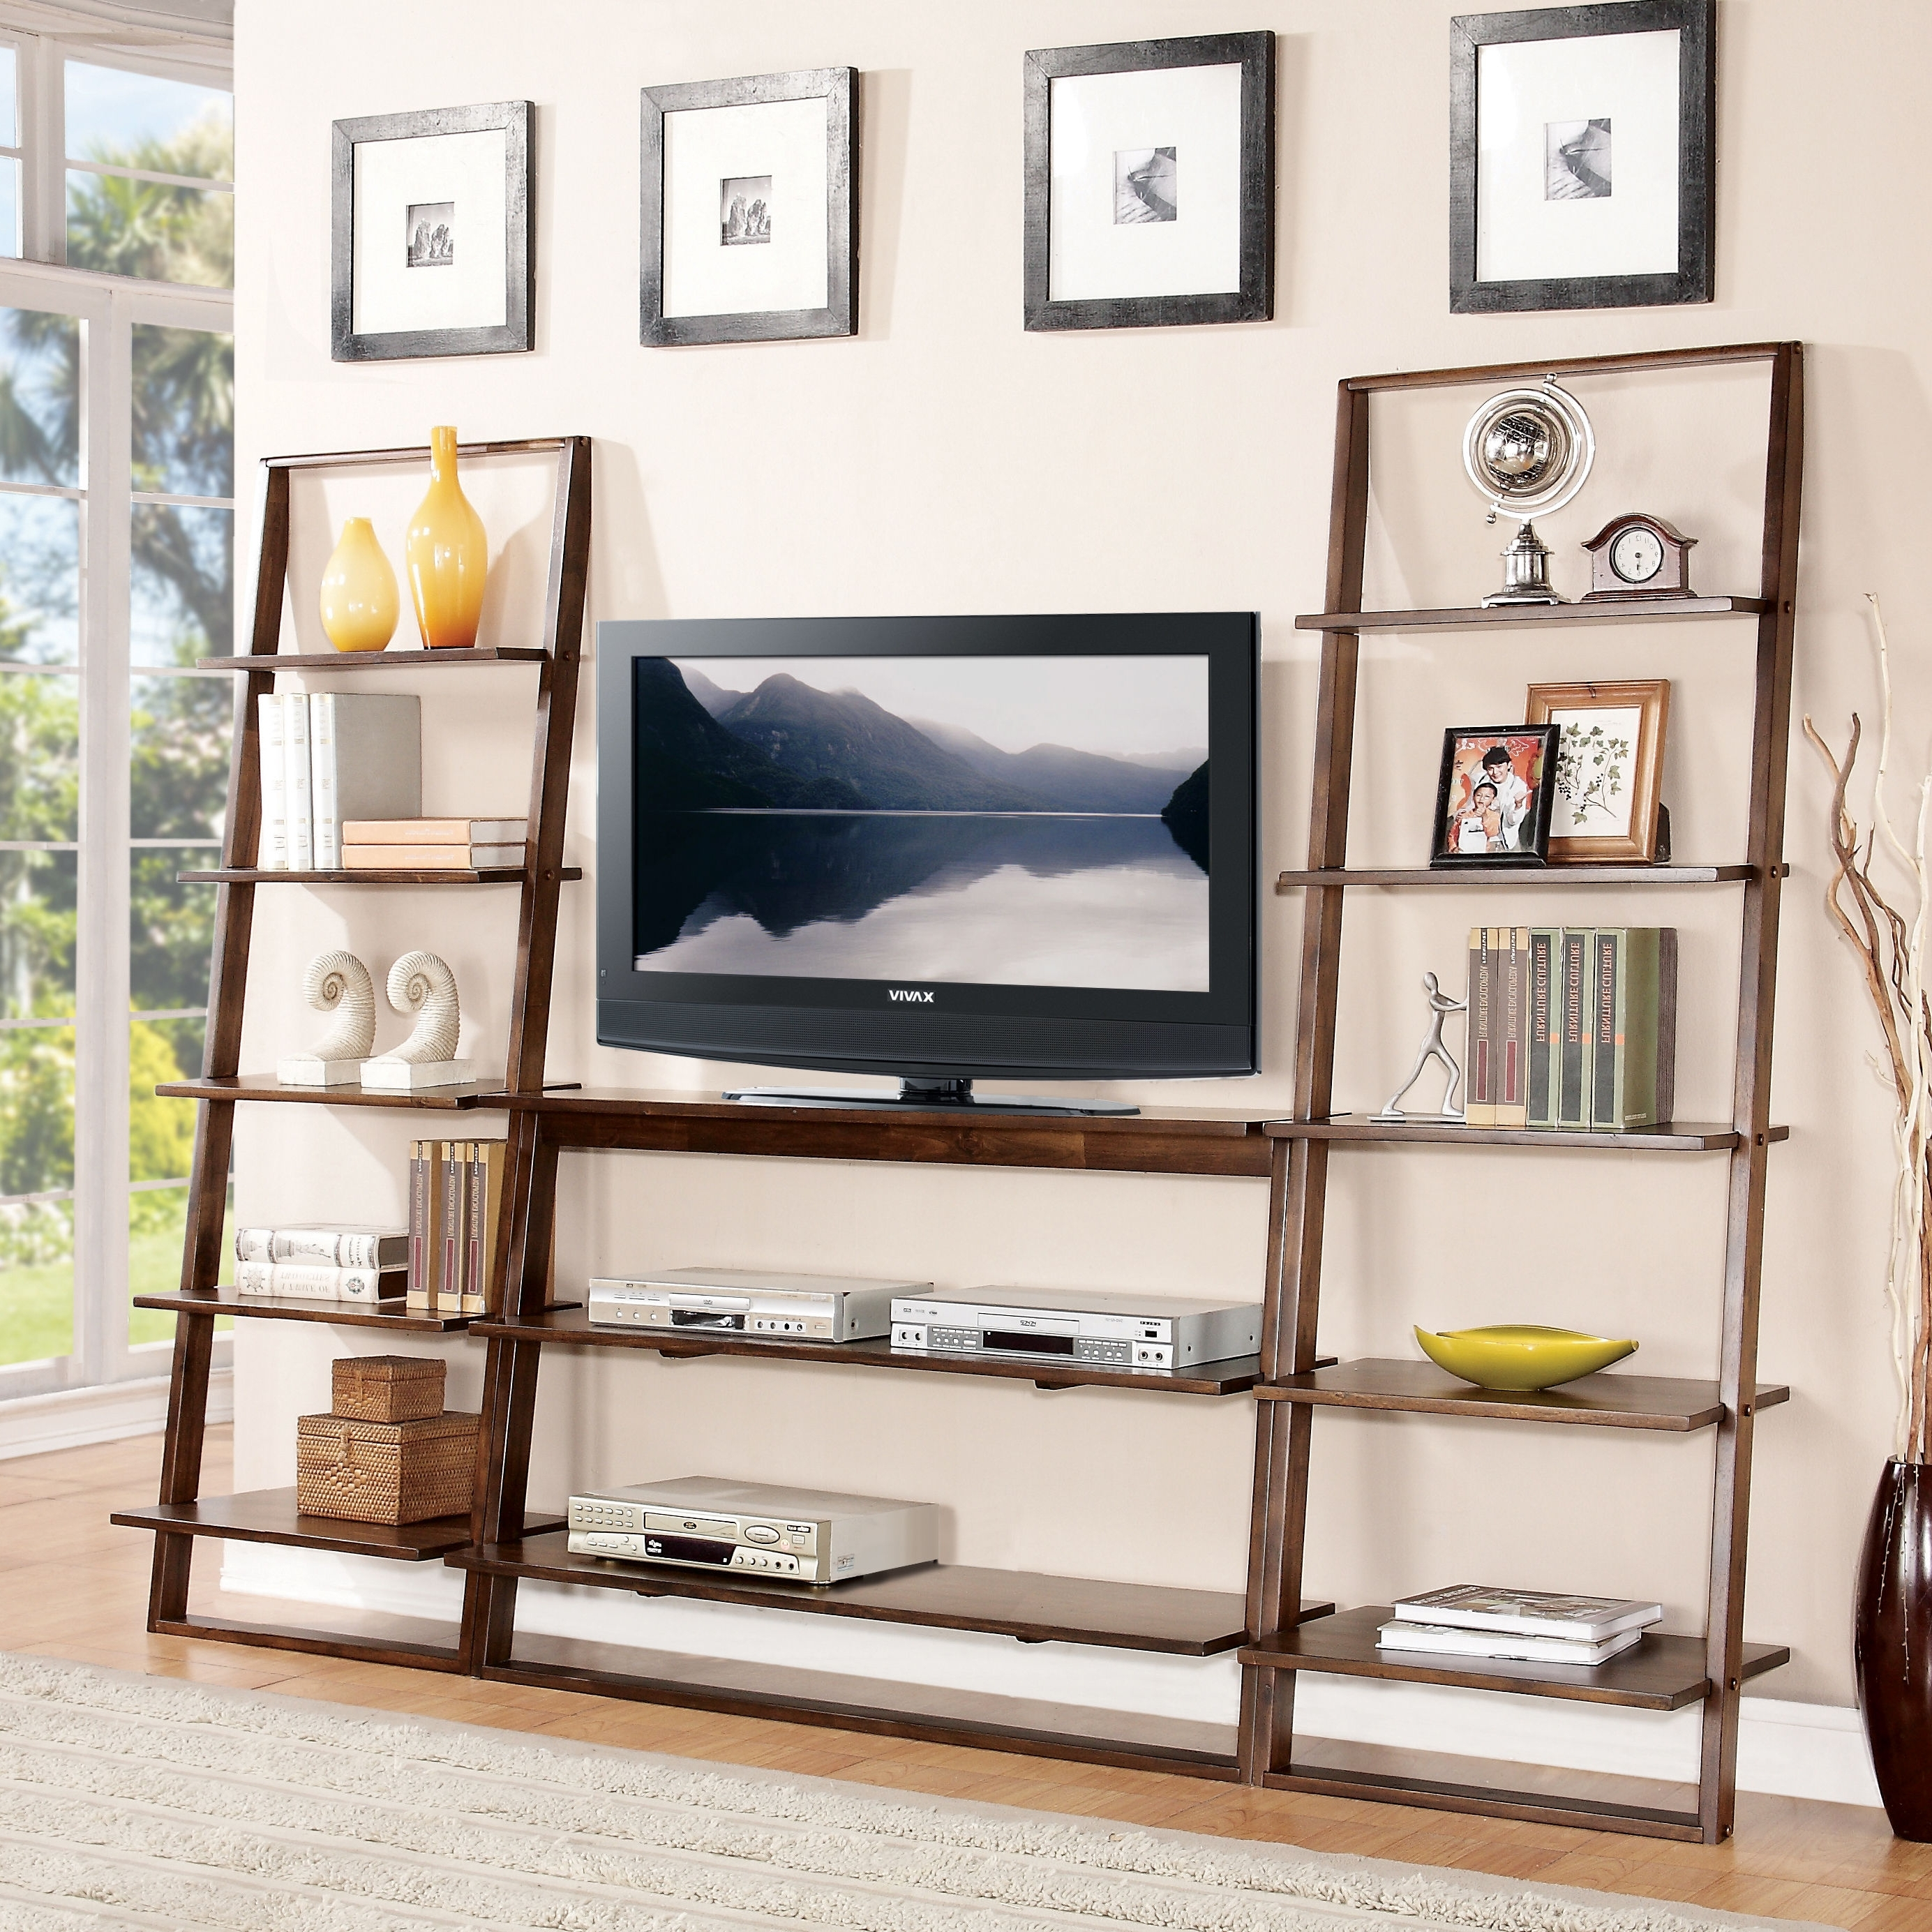 Contemporary Leaning Bookcase Ideas: Minimalist Leaning Bookcase With Regard To Best And Newest Leaning Bookcases (View 1 of 15)